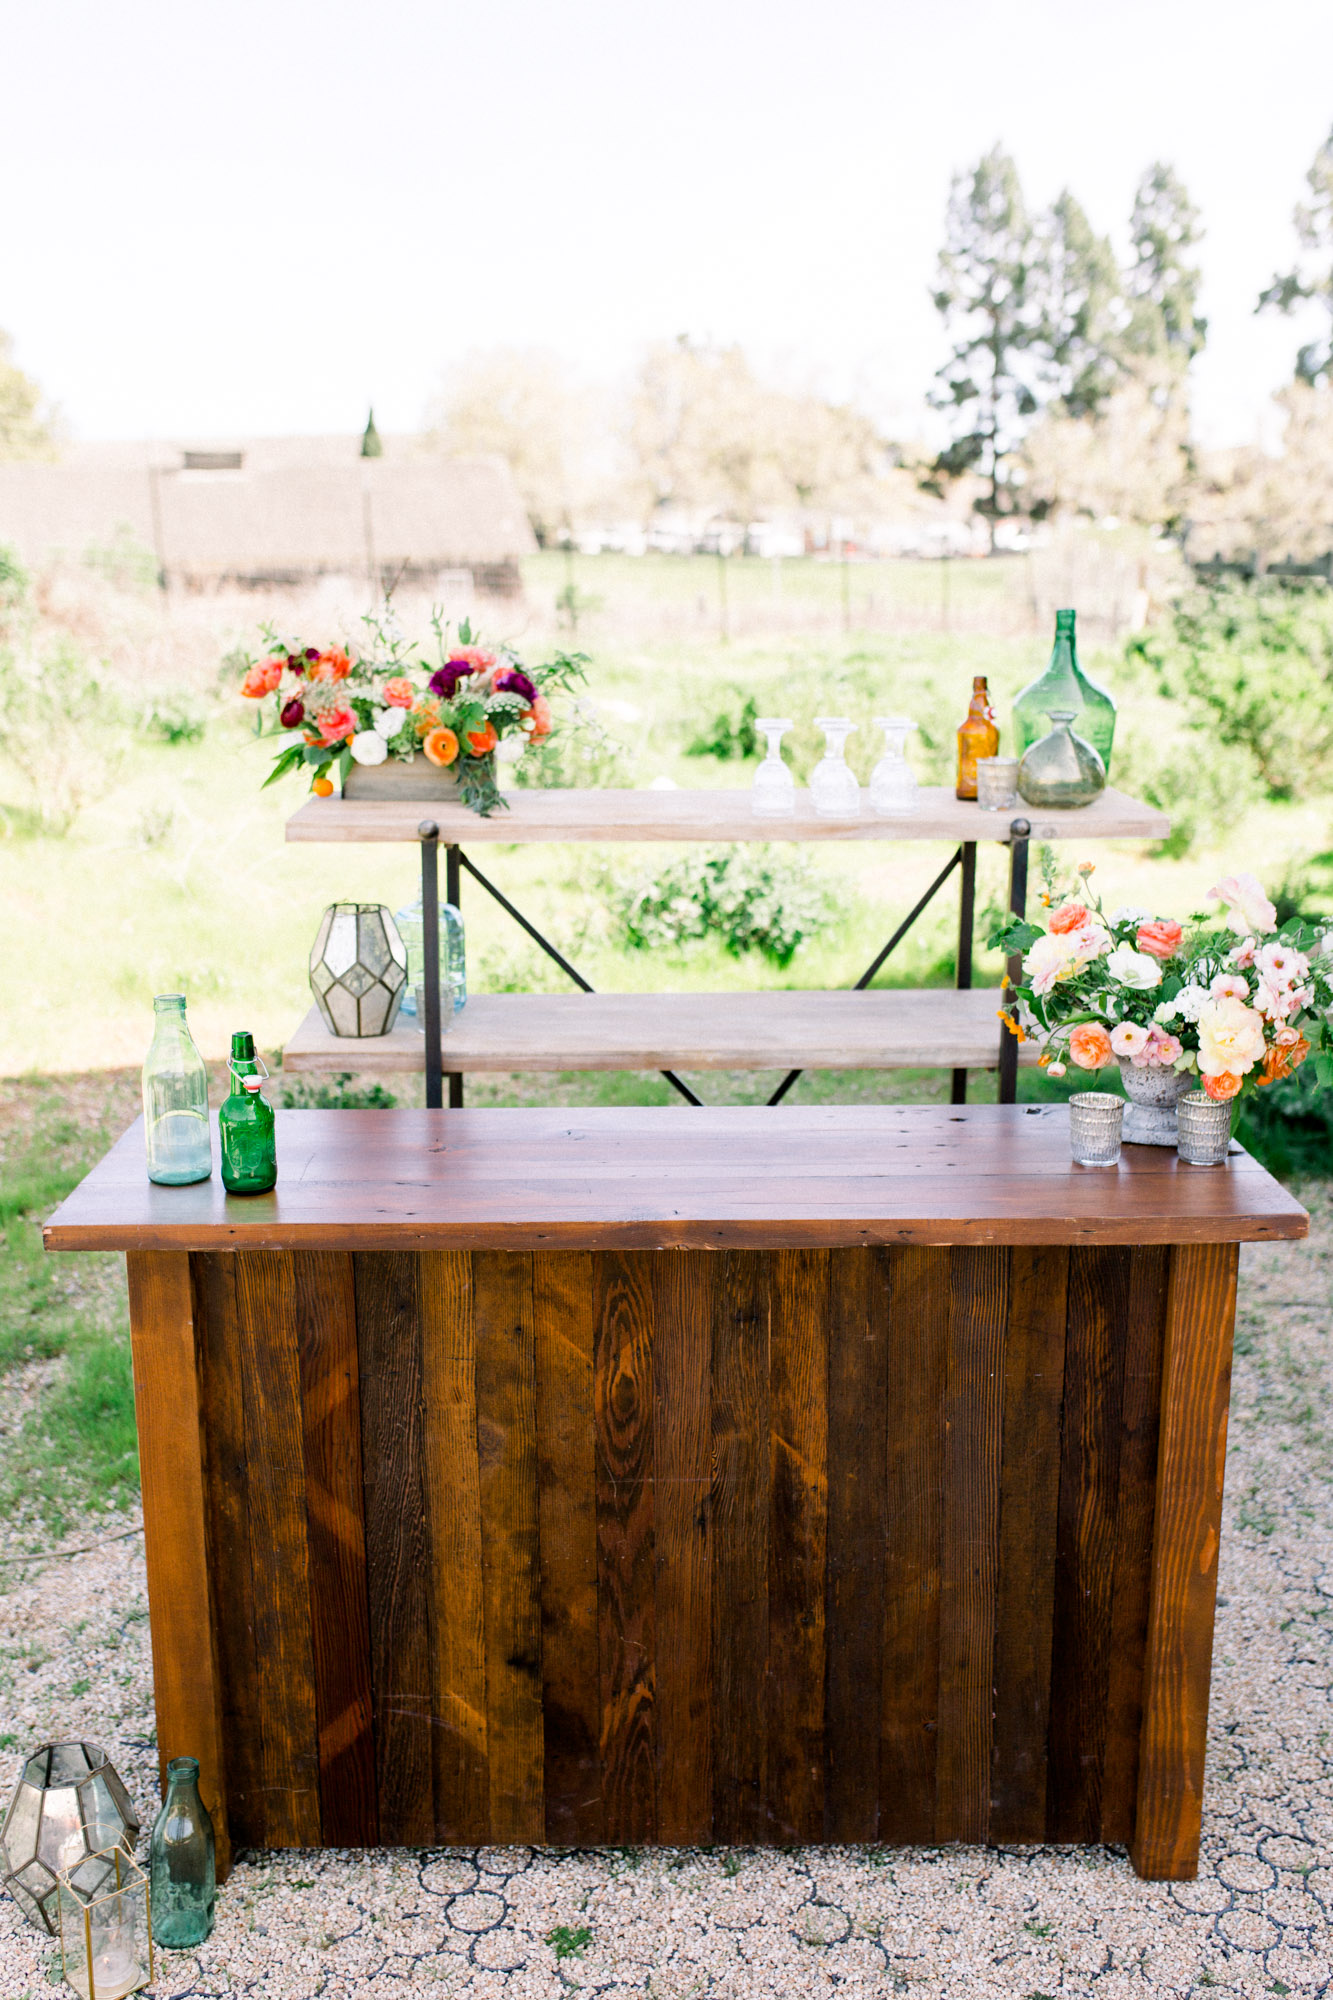 viewpointevents.com | Bars and Bar Carts for rent in California | Vintage Chic Rentals for weddings